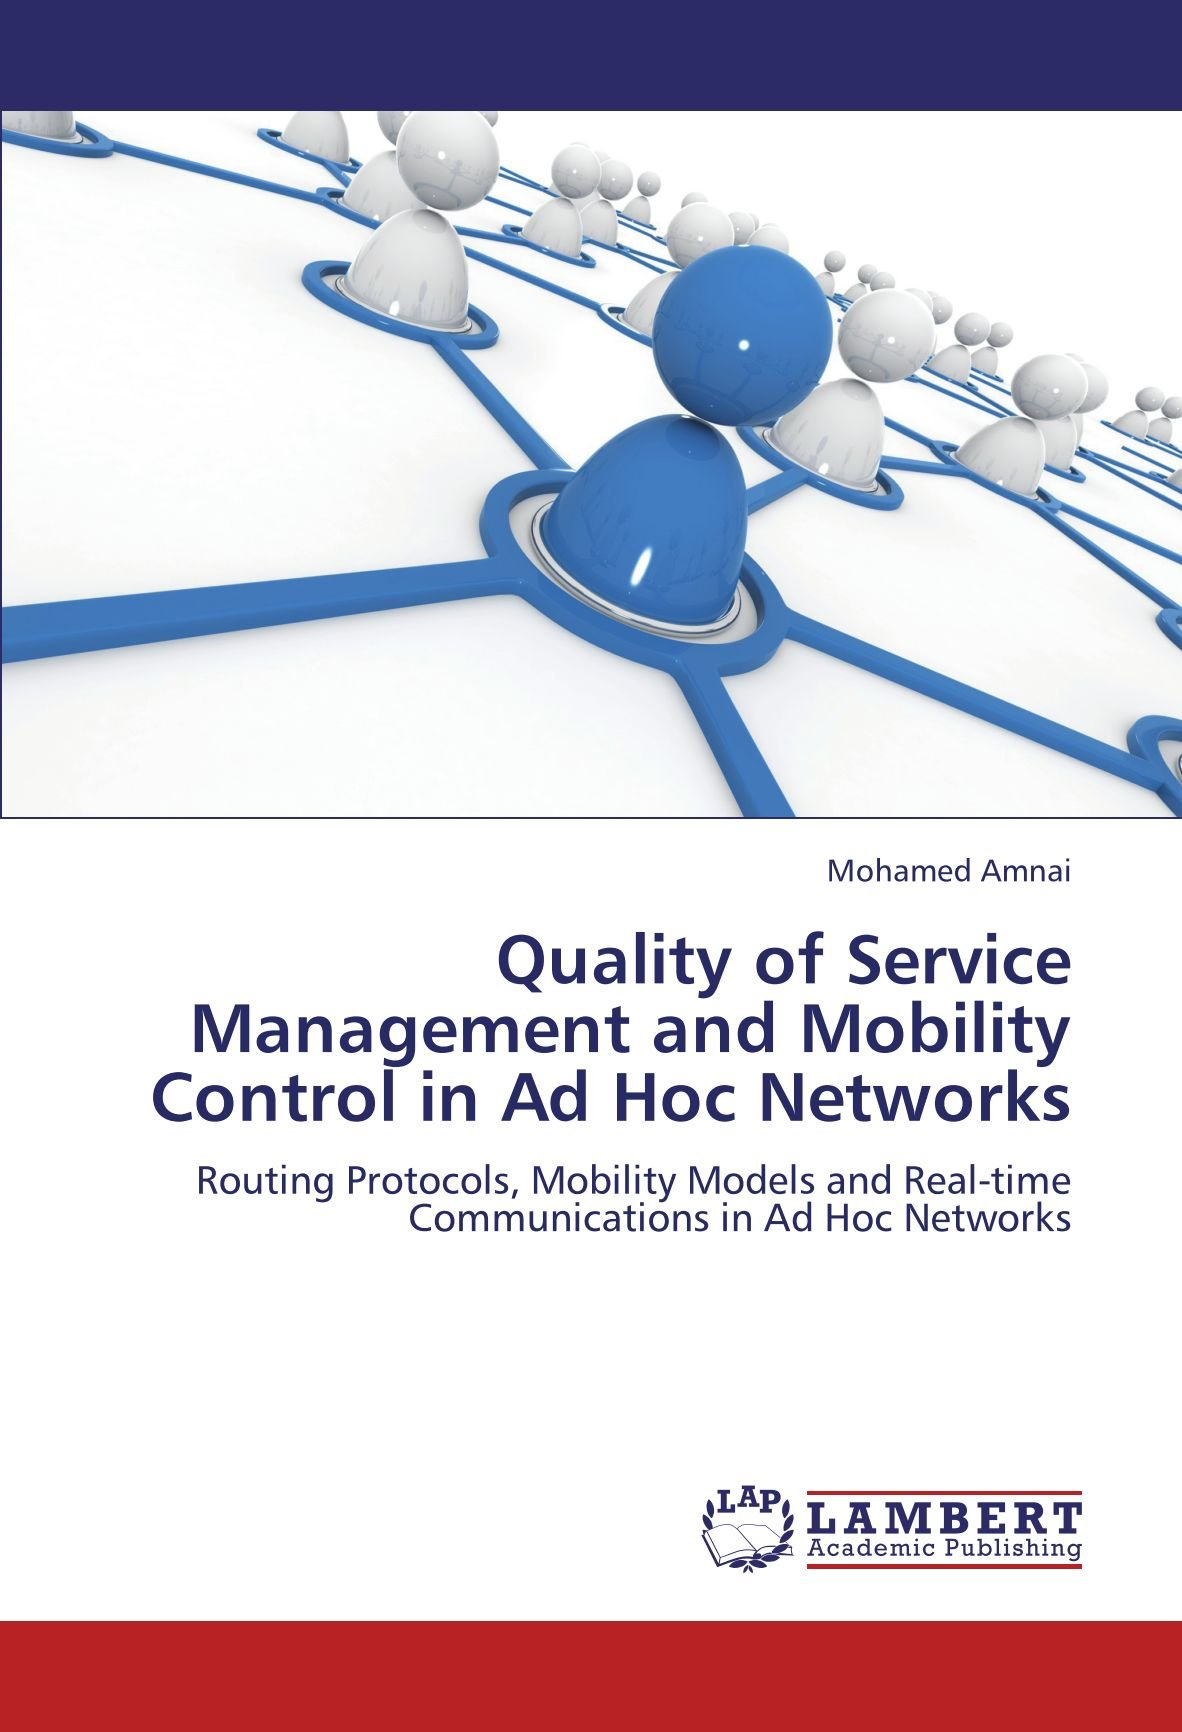 Download Quality of Service Management and Mobility Control in Ad Hoc Networks: Routing Protocols, Mobility Models and Real-time Communications in Ad Hoc Networks pdf